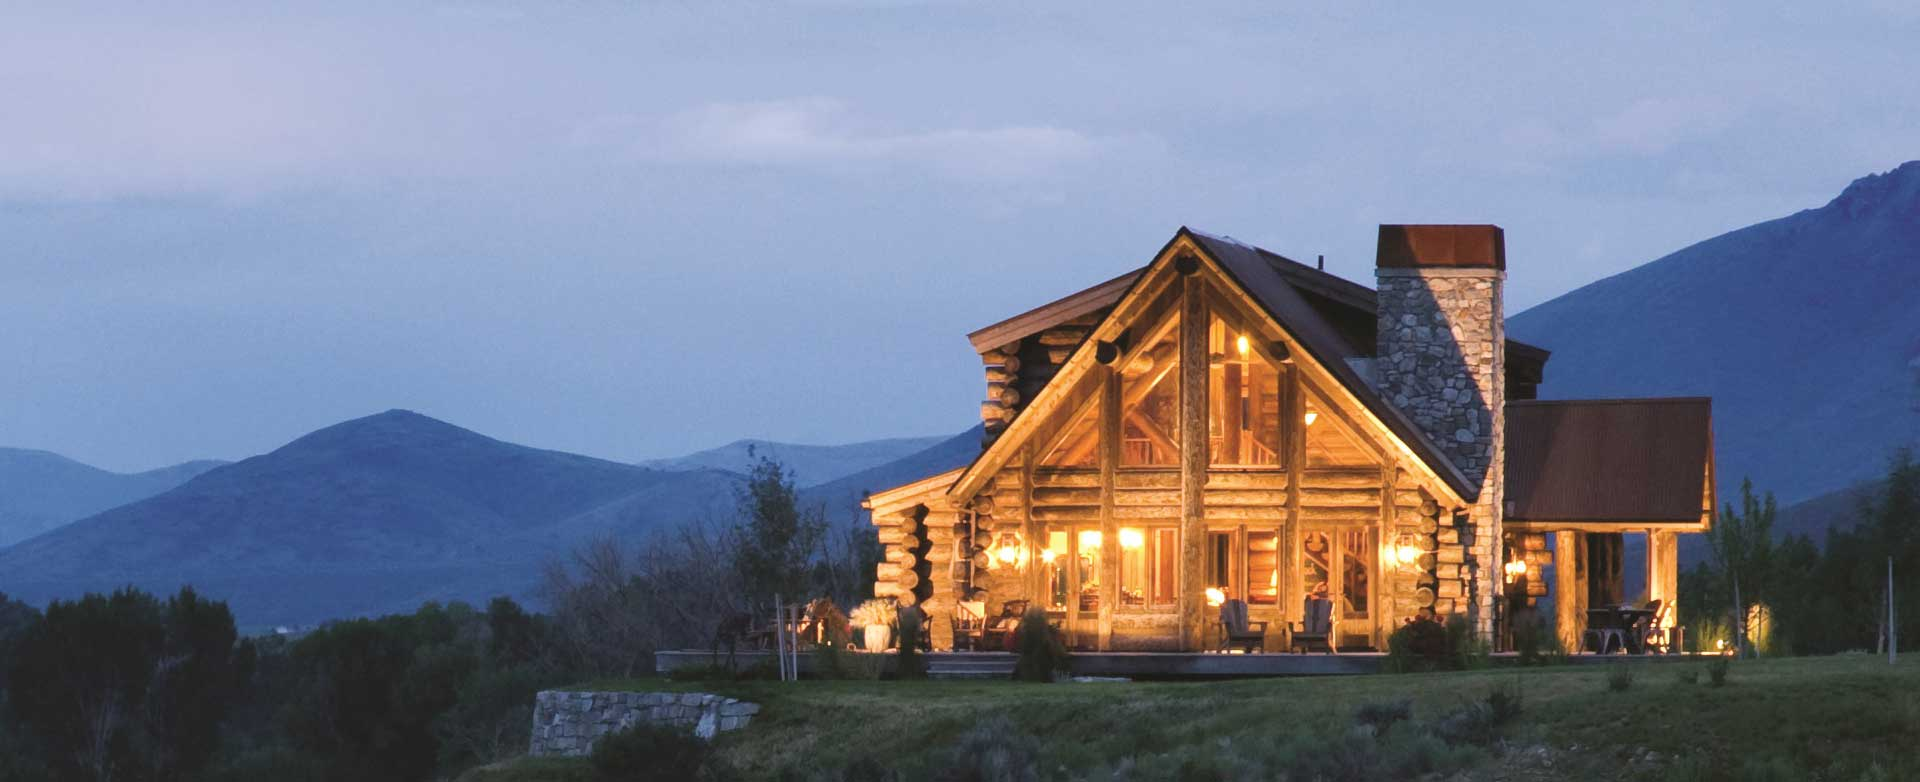 Cabin Refined log home